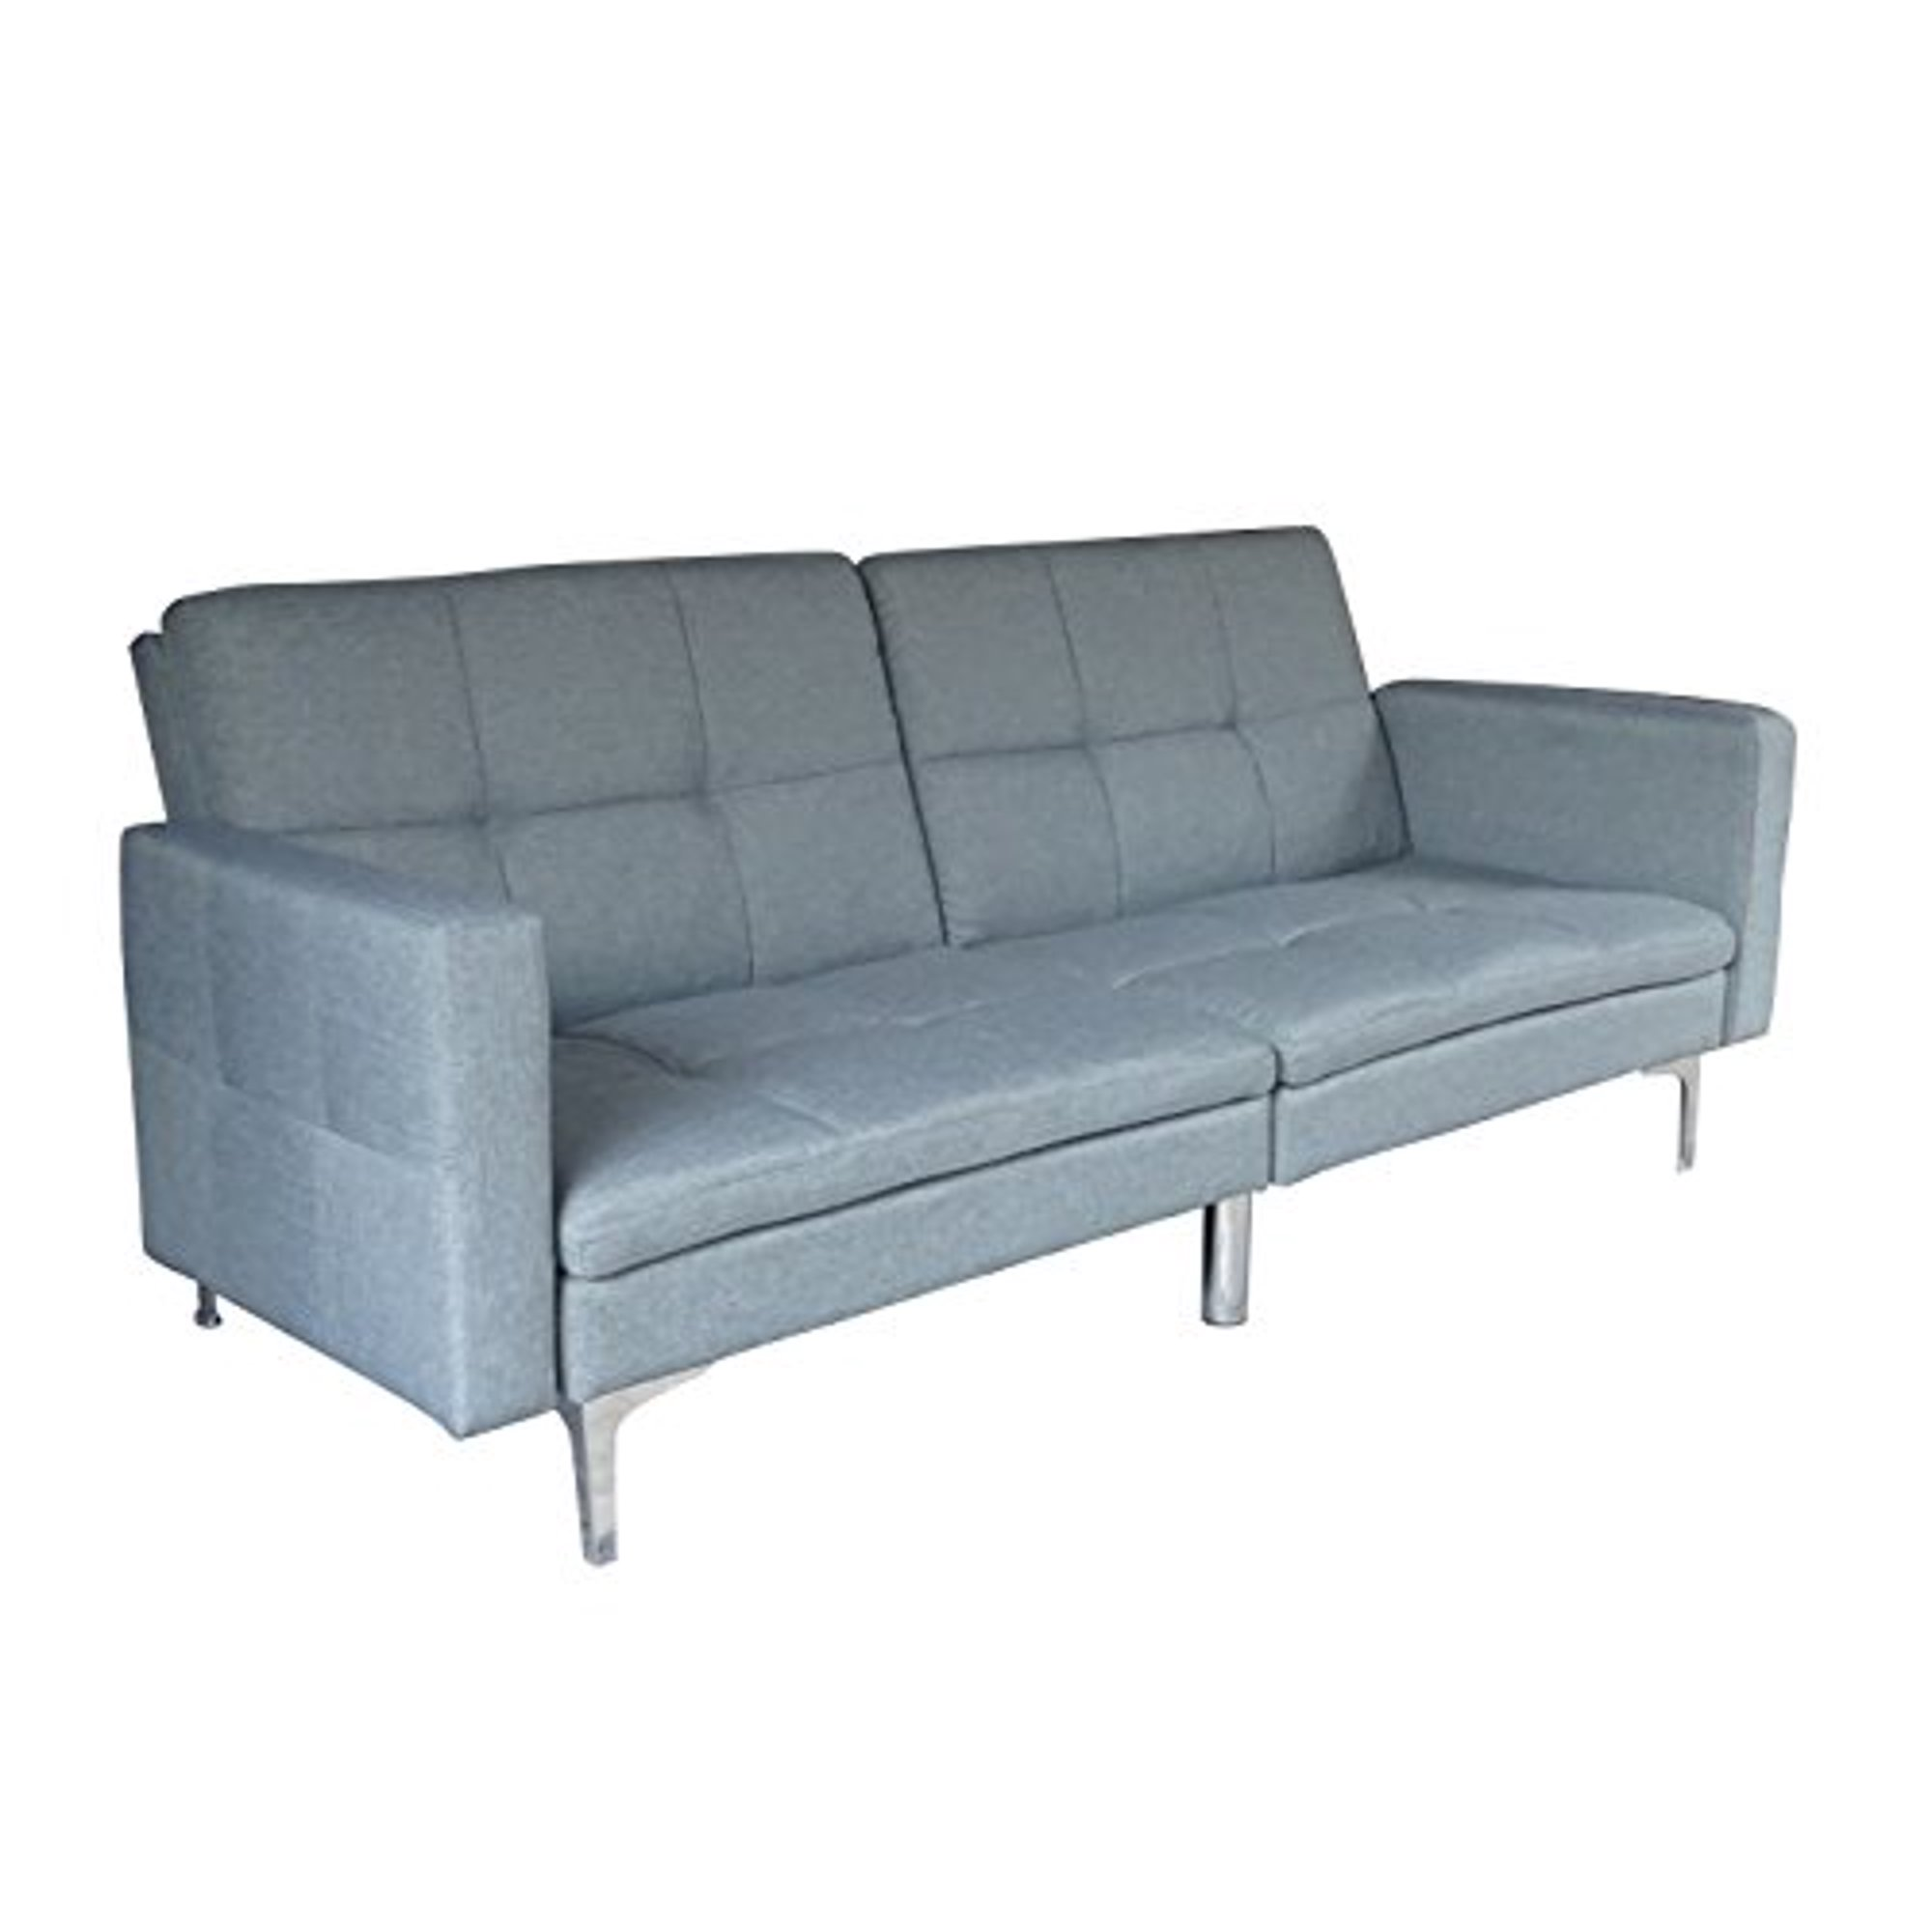 Peachy Viscologic Clarke Split Back Convertible Futon Sofa Download Free Architecture Designs Lectubocepmadebymaigaardcom